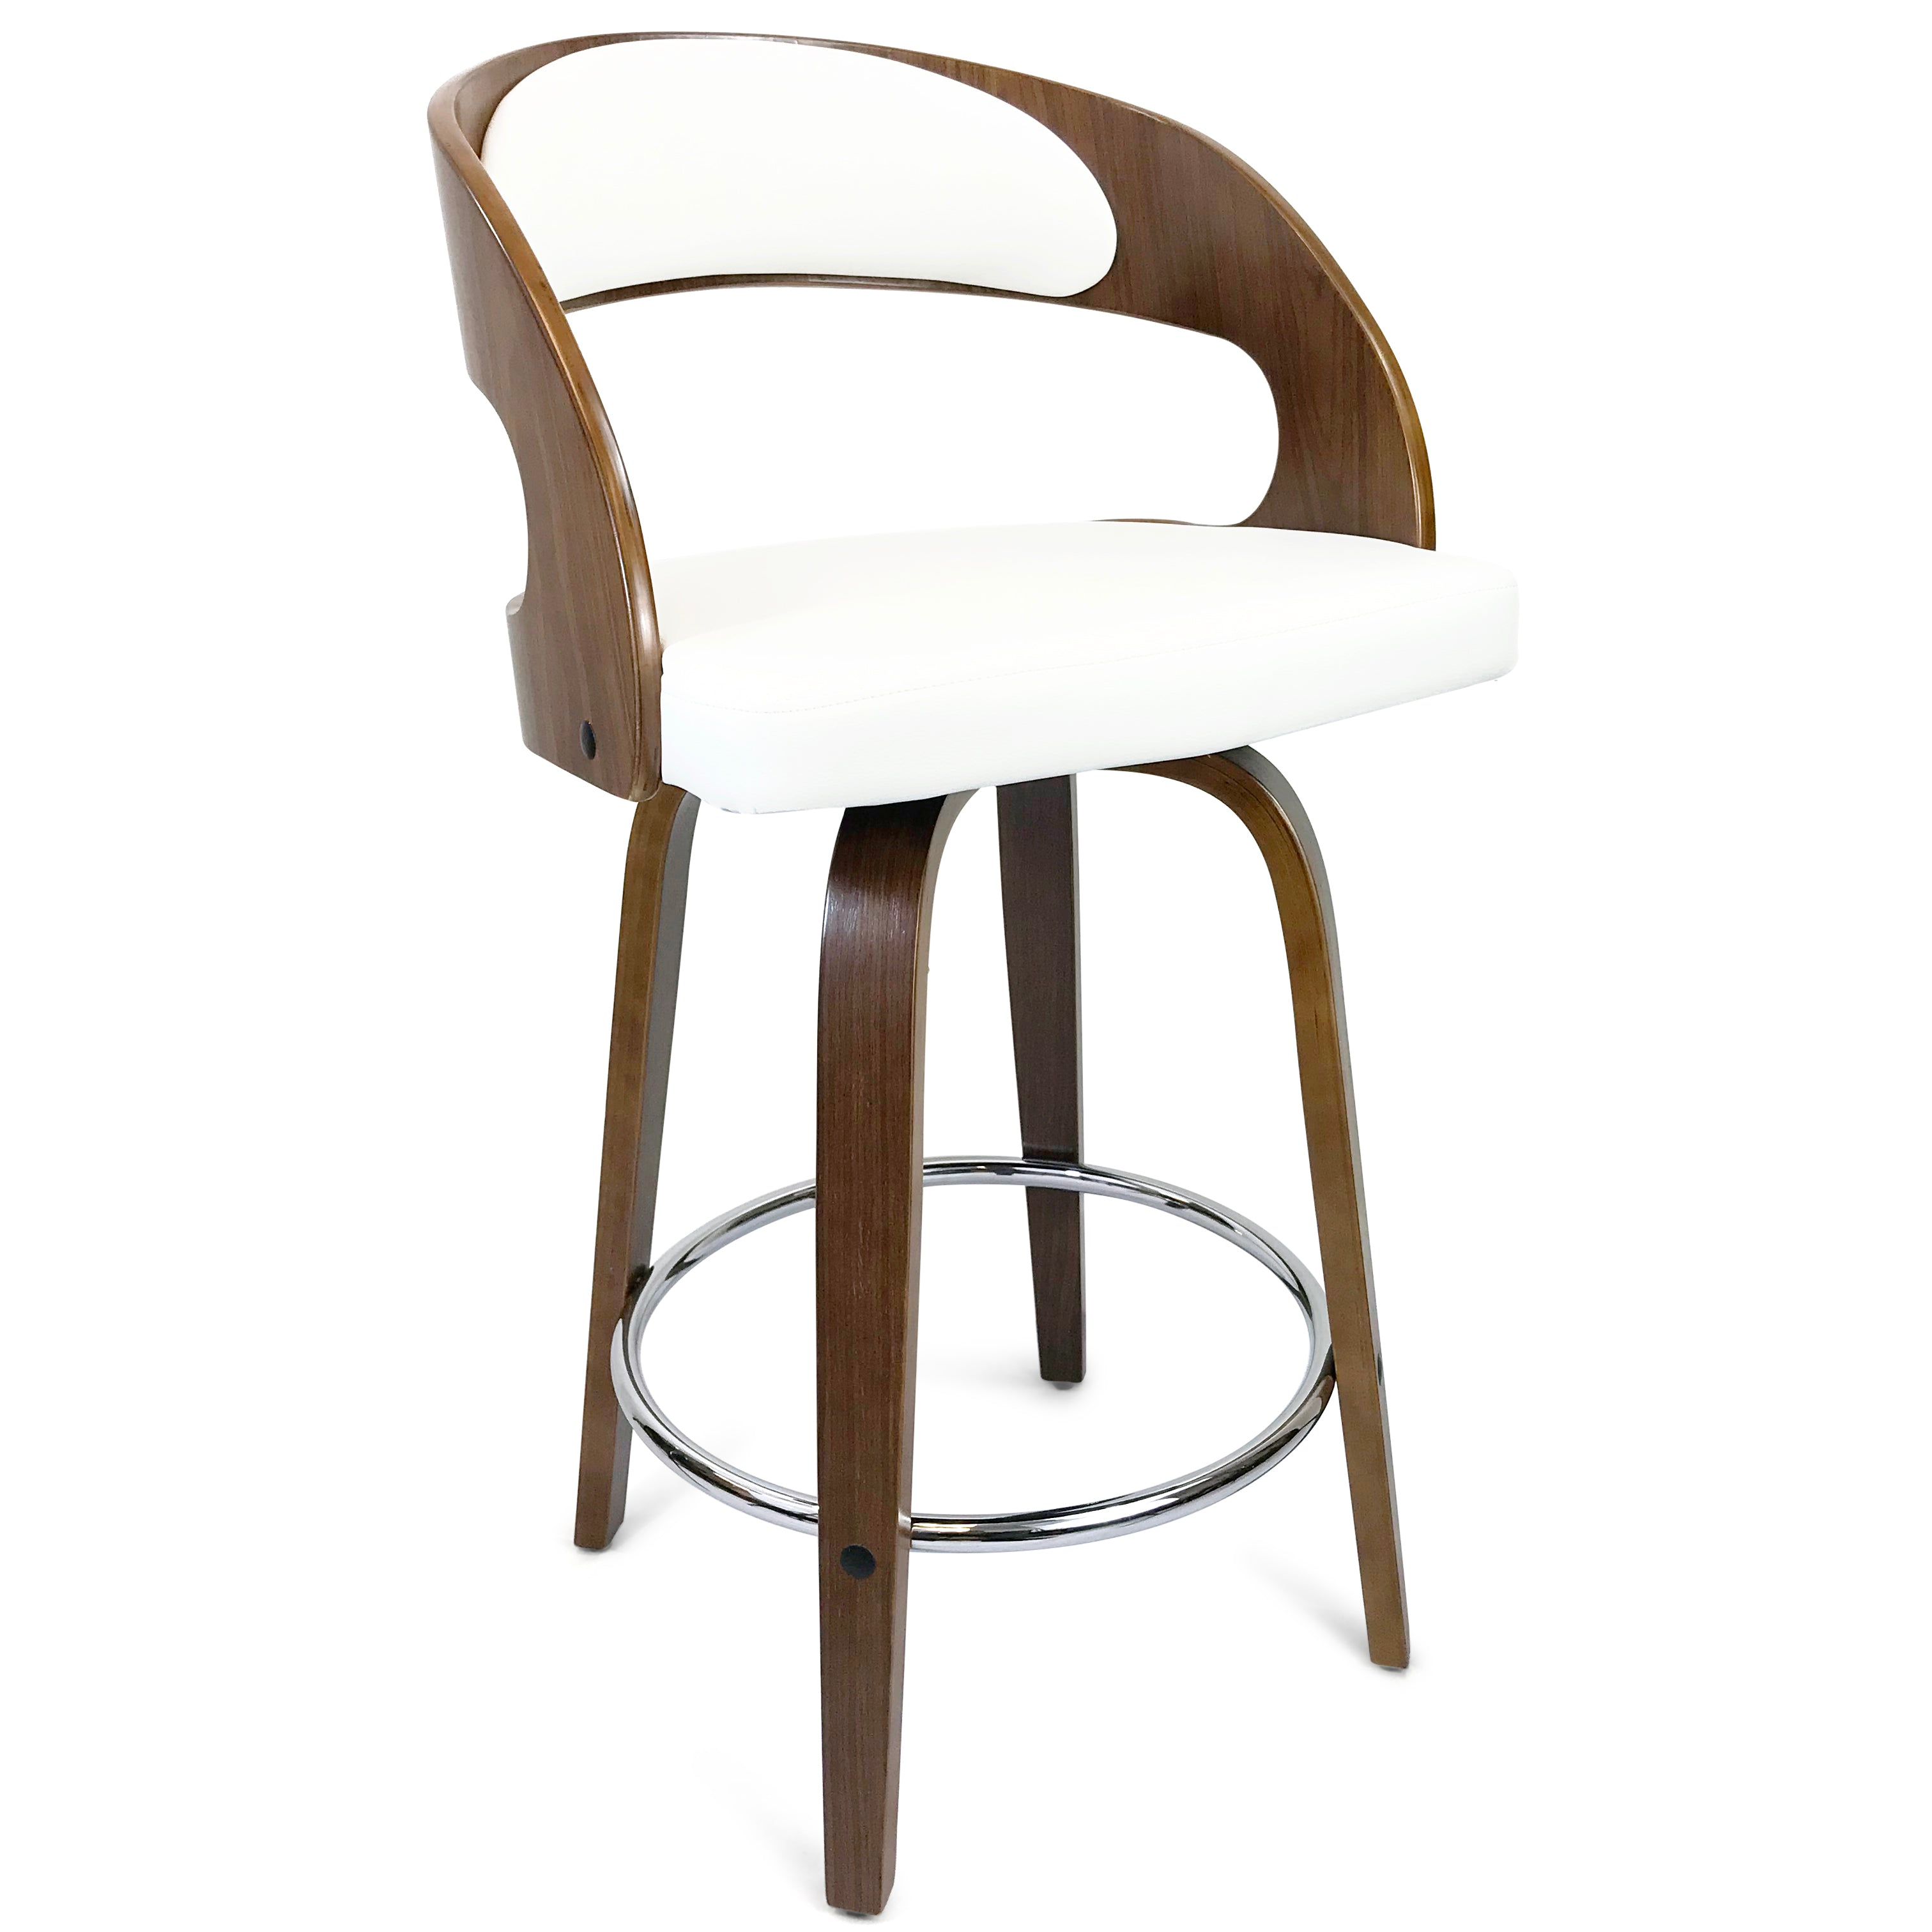 Swell Kitchen Stools Hundreds Of Counter Breakfast Bar Stools Andrewgaddart Wooden Chair Designs For Living Room Andrewgaddartcom